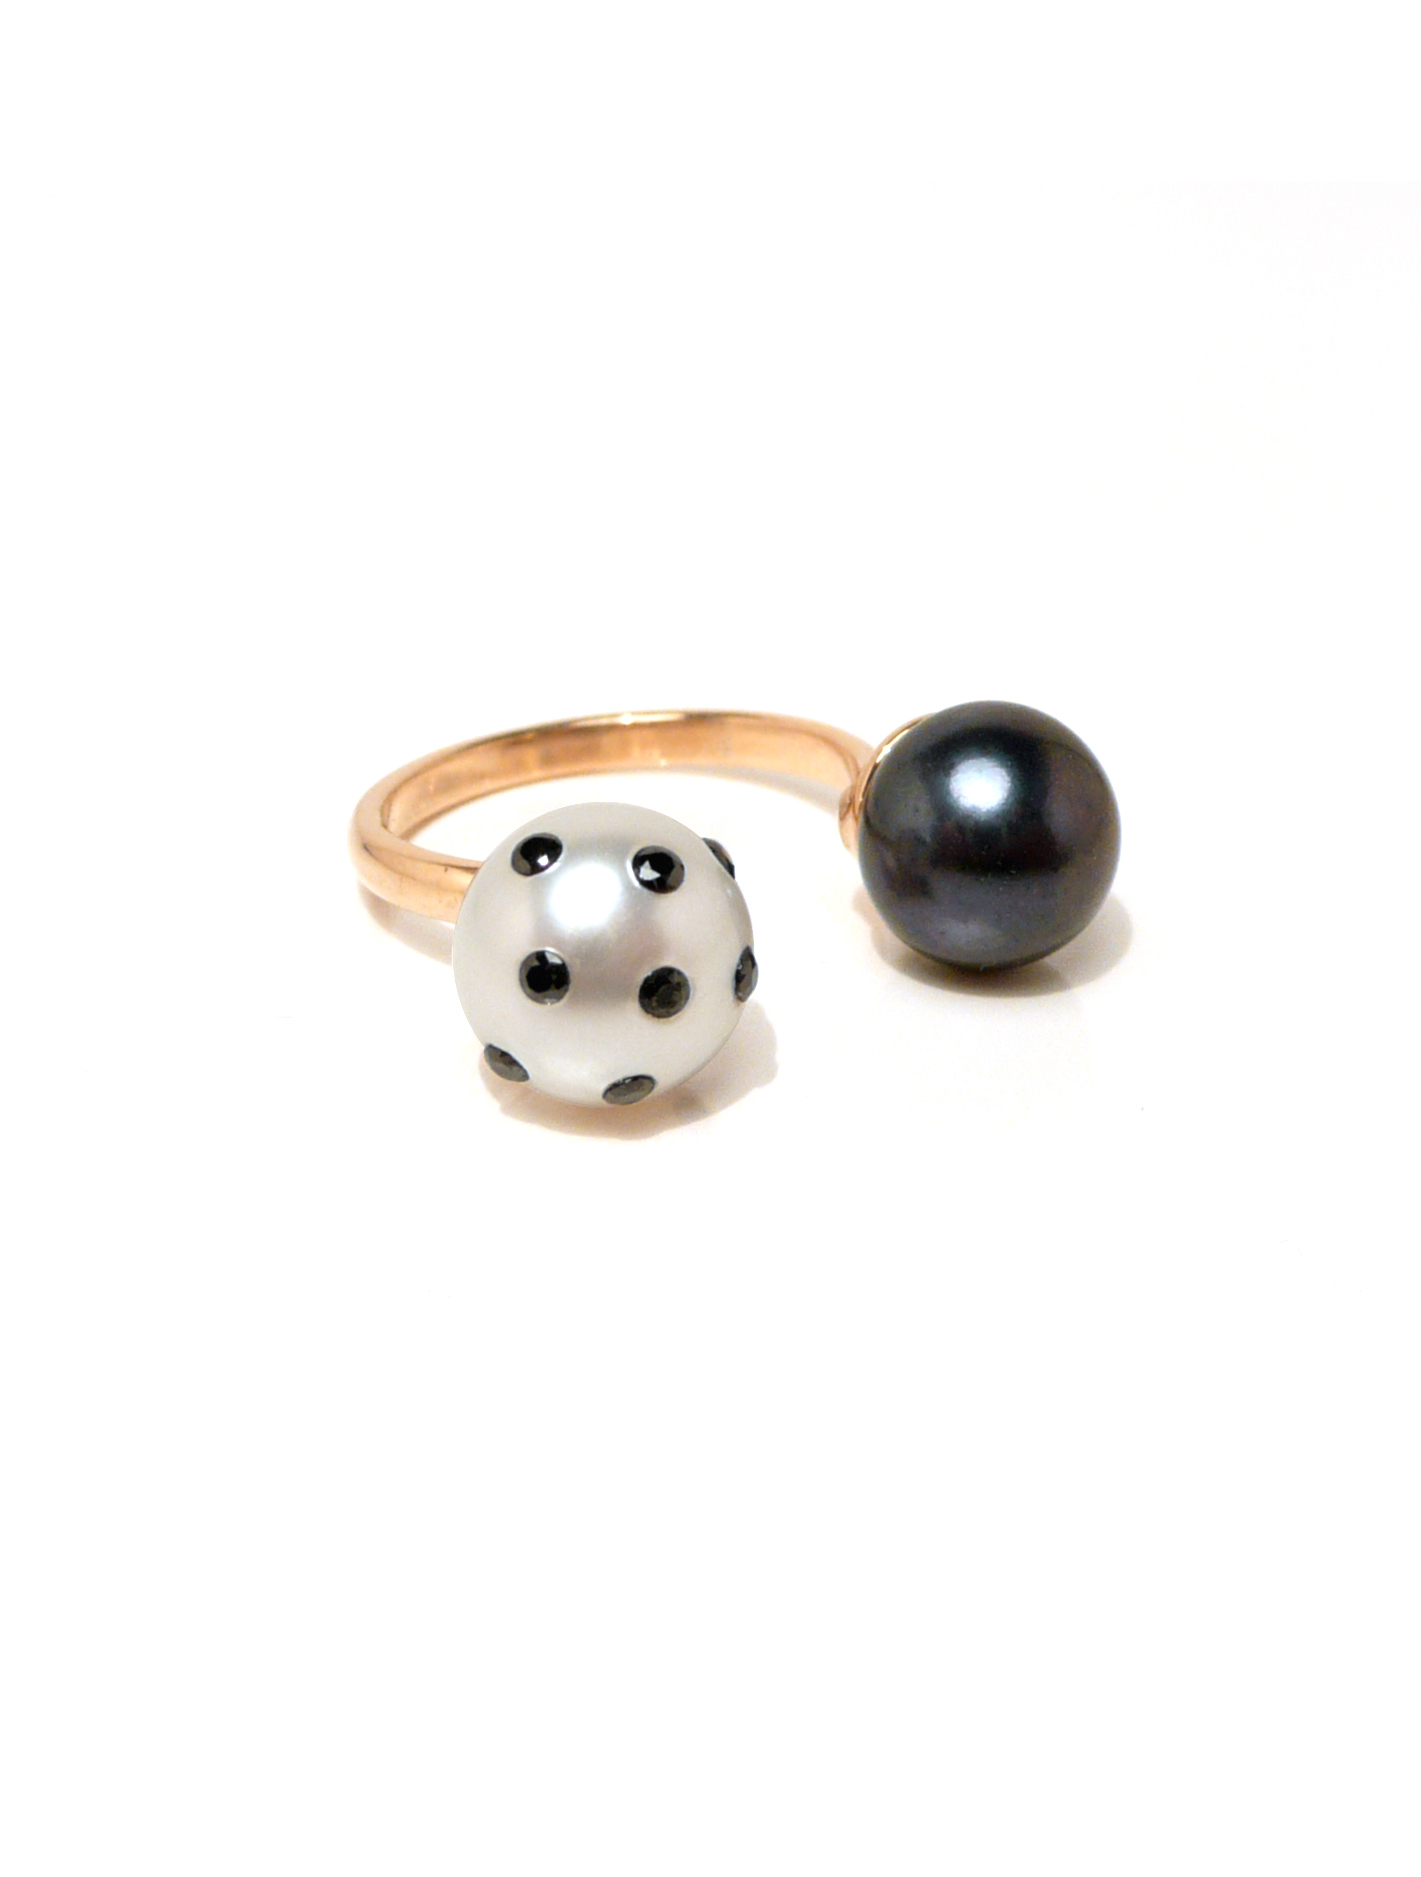 Polka Dot and Peacock Pearl Double Ring